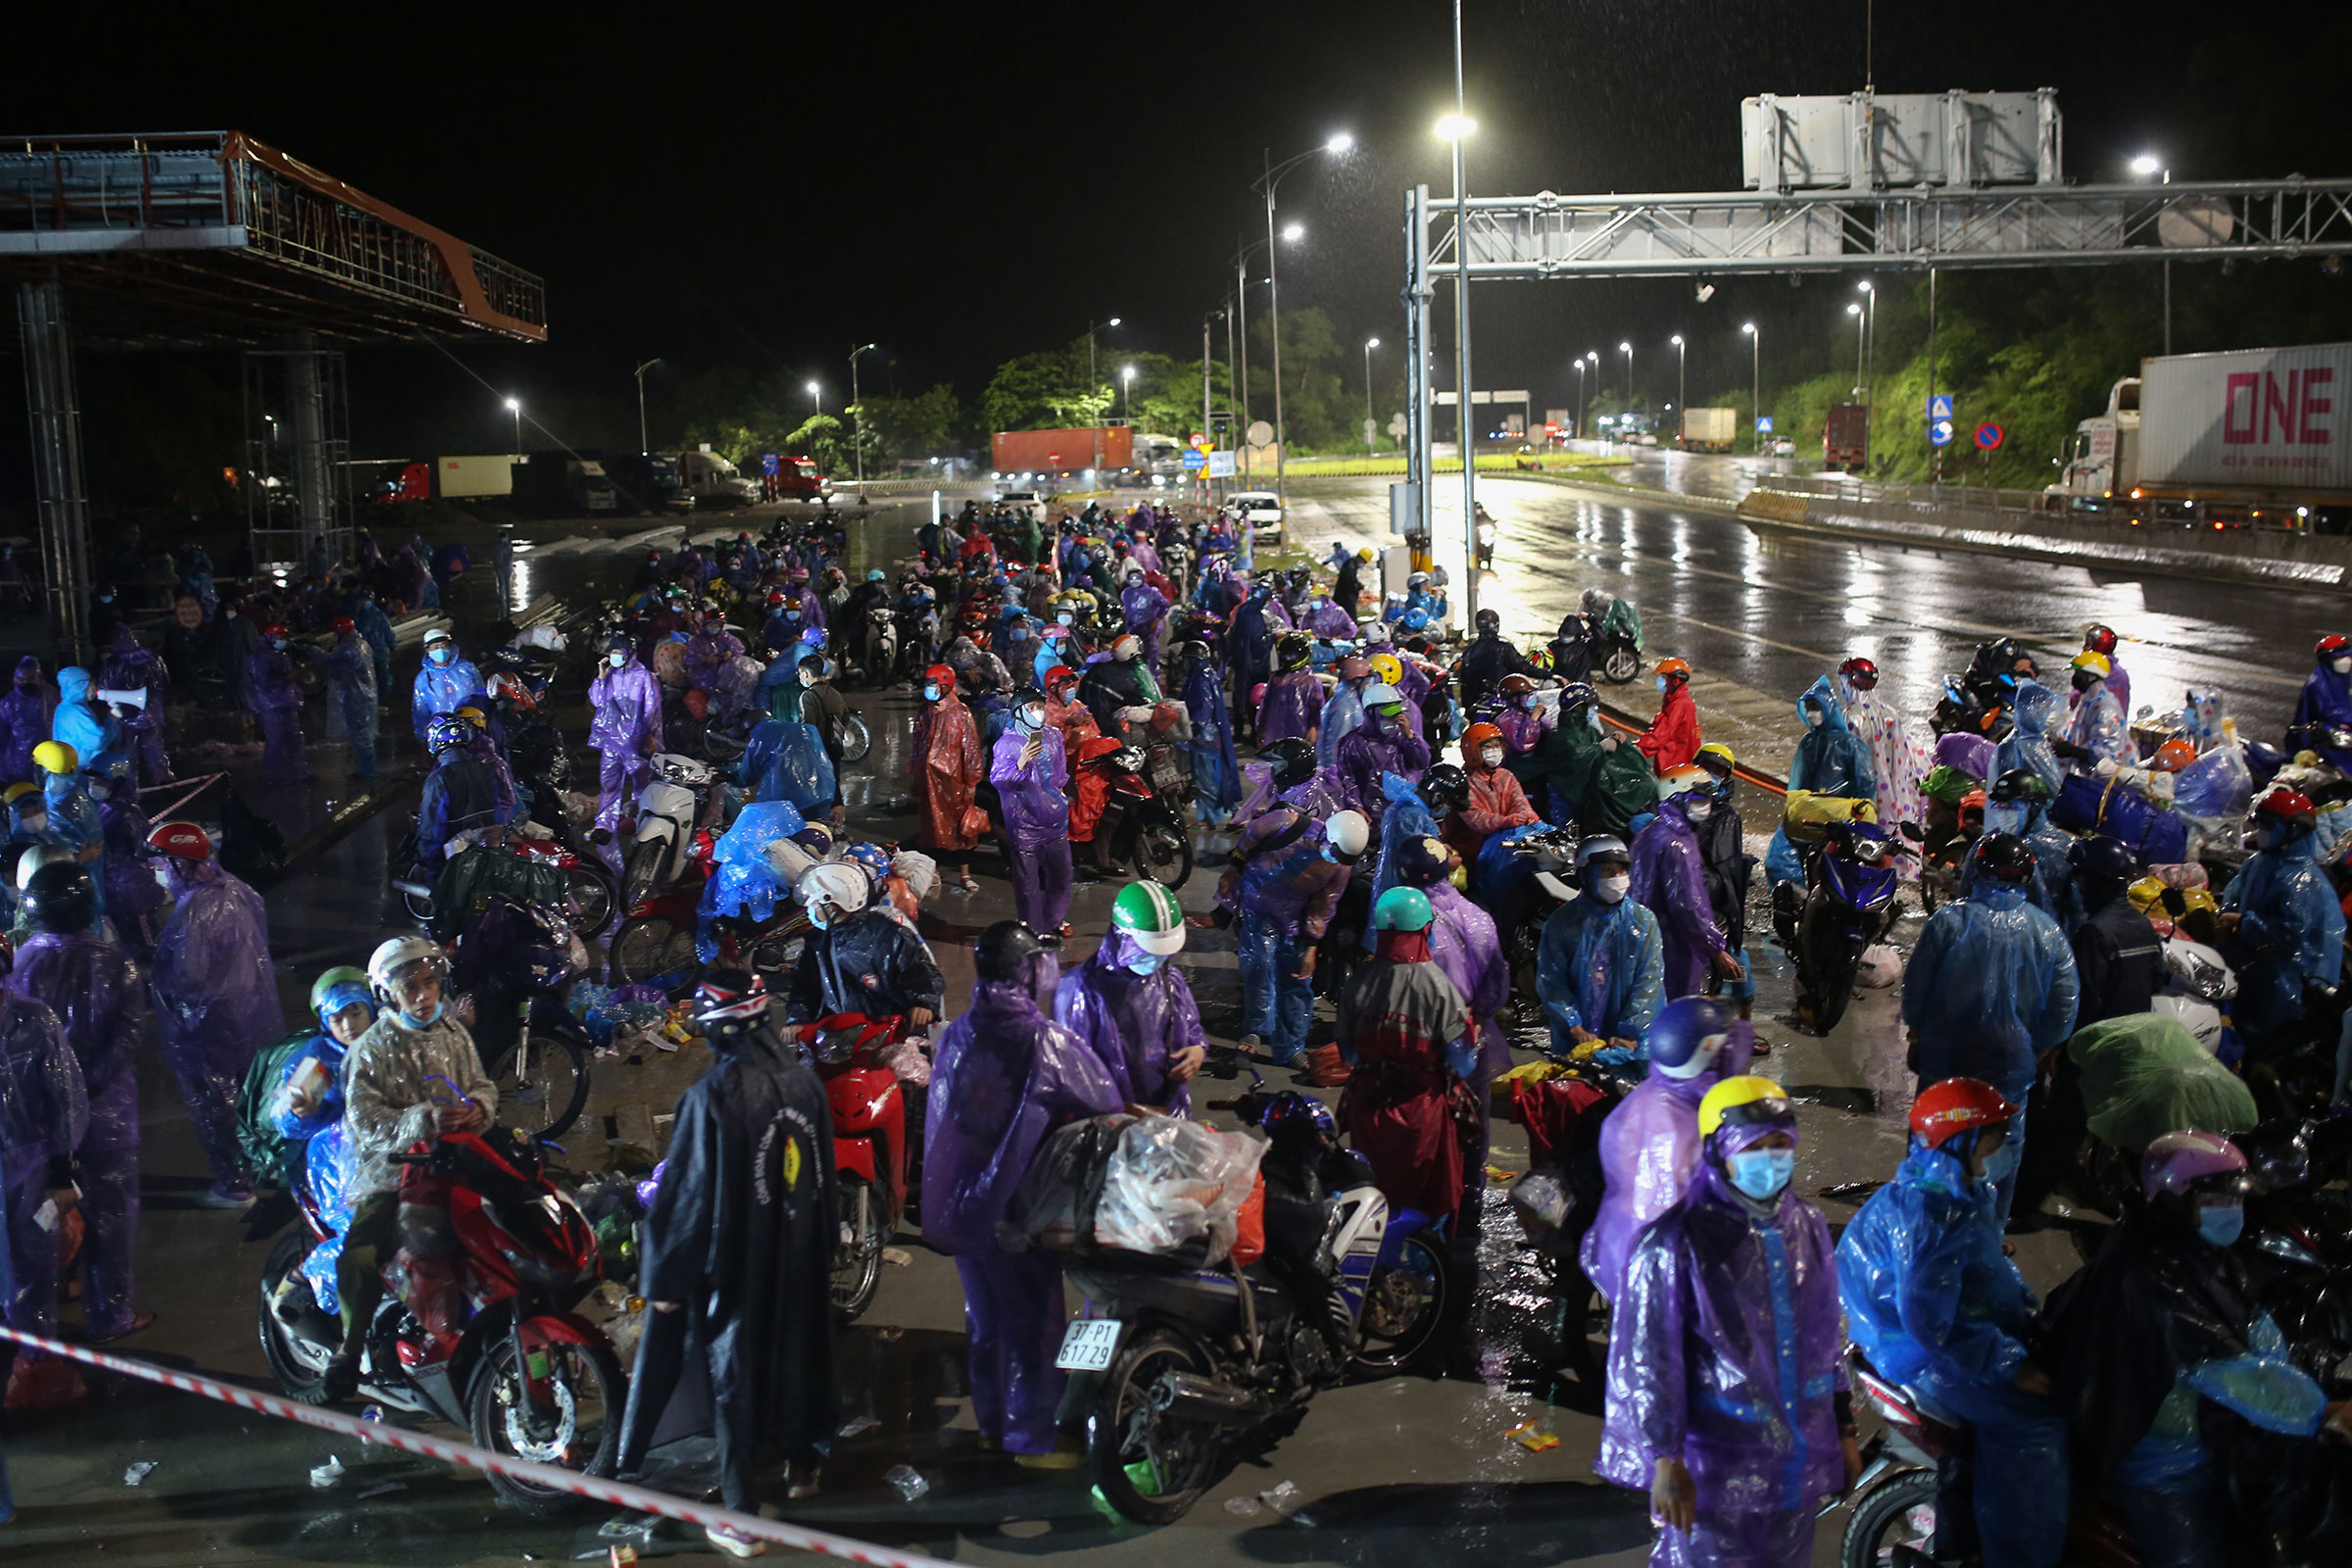 Migrant workers stop near the border of Thua Thien Hue and Da Nang in central Vietnam on their journey back home by motorbikes, October 7, 2021. Photo by VnExpress/Vo Thanh